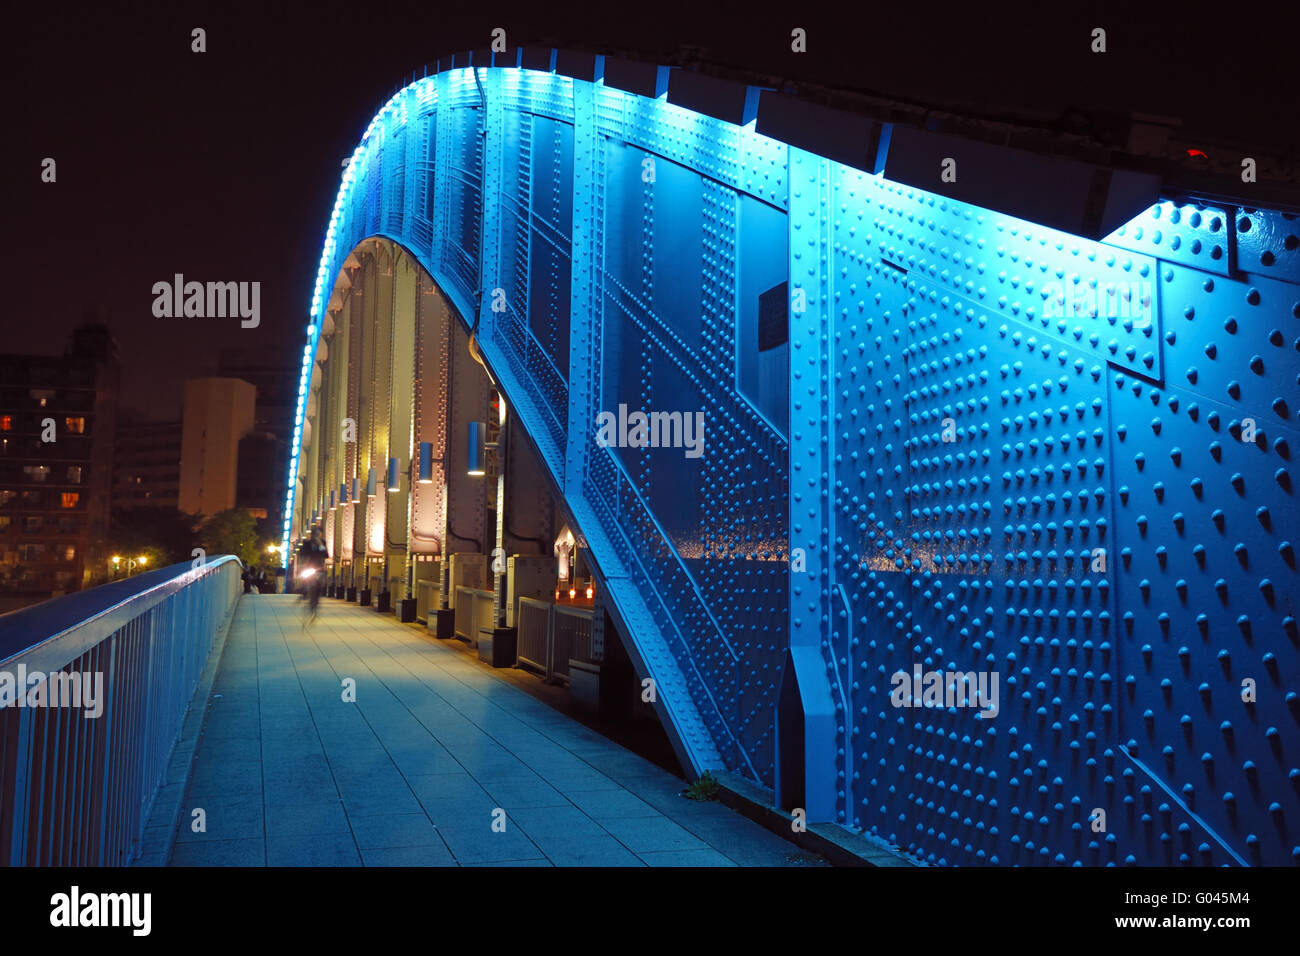 pedestrian way along the metallic arc structure of - Stock Image